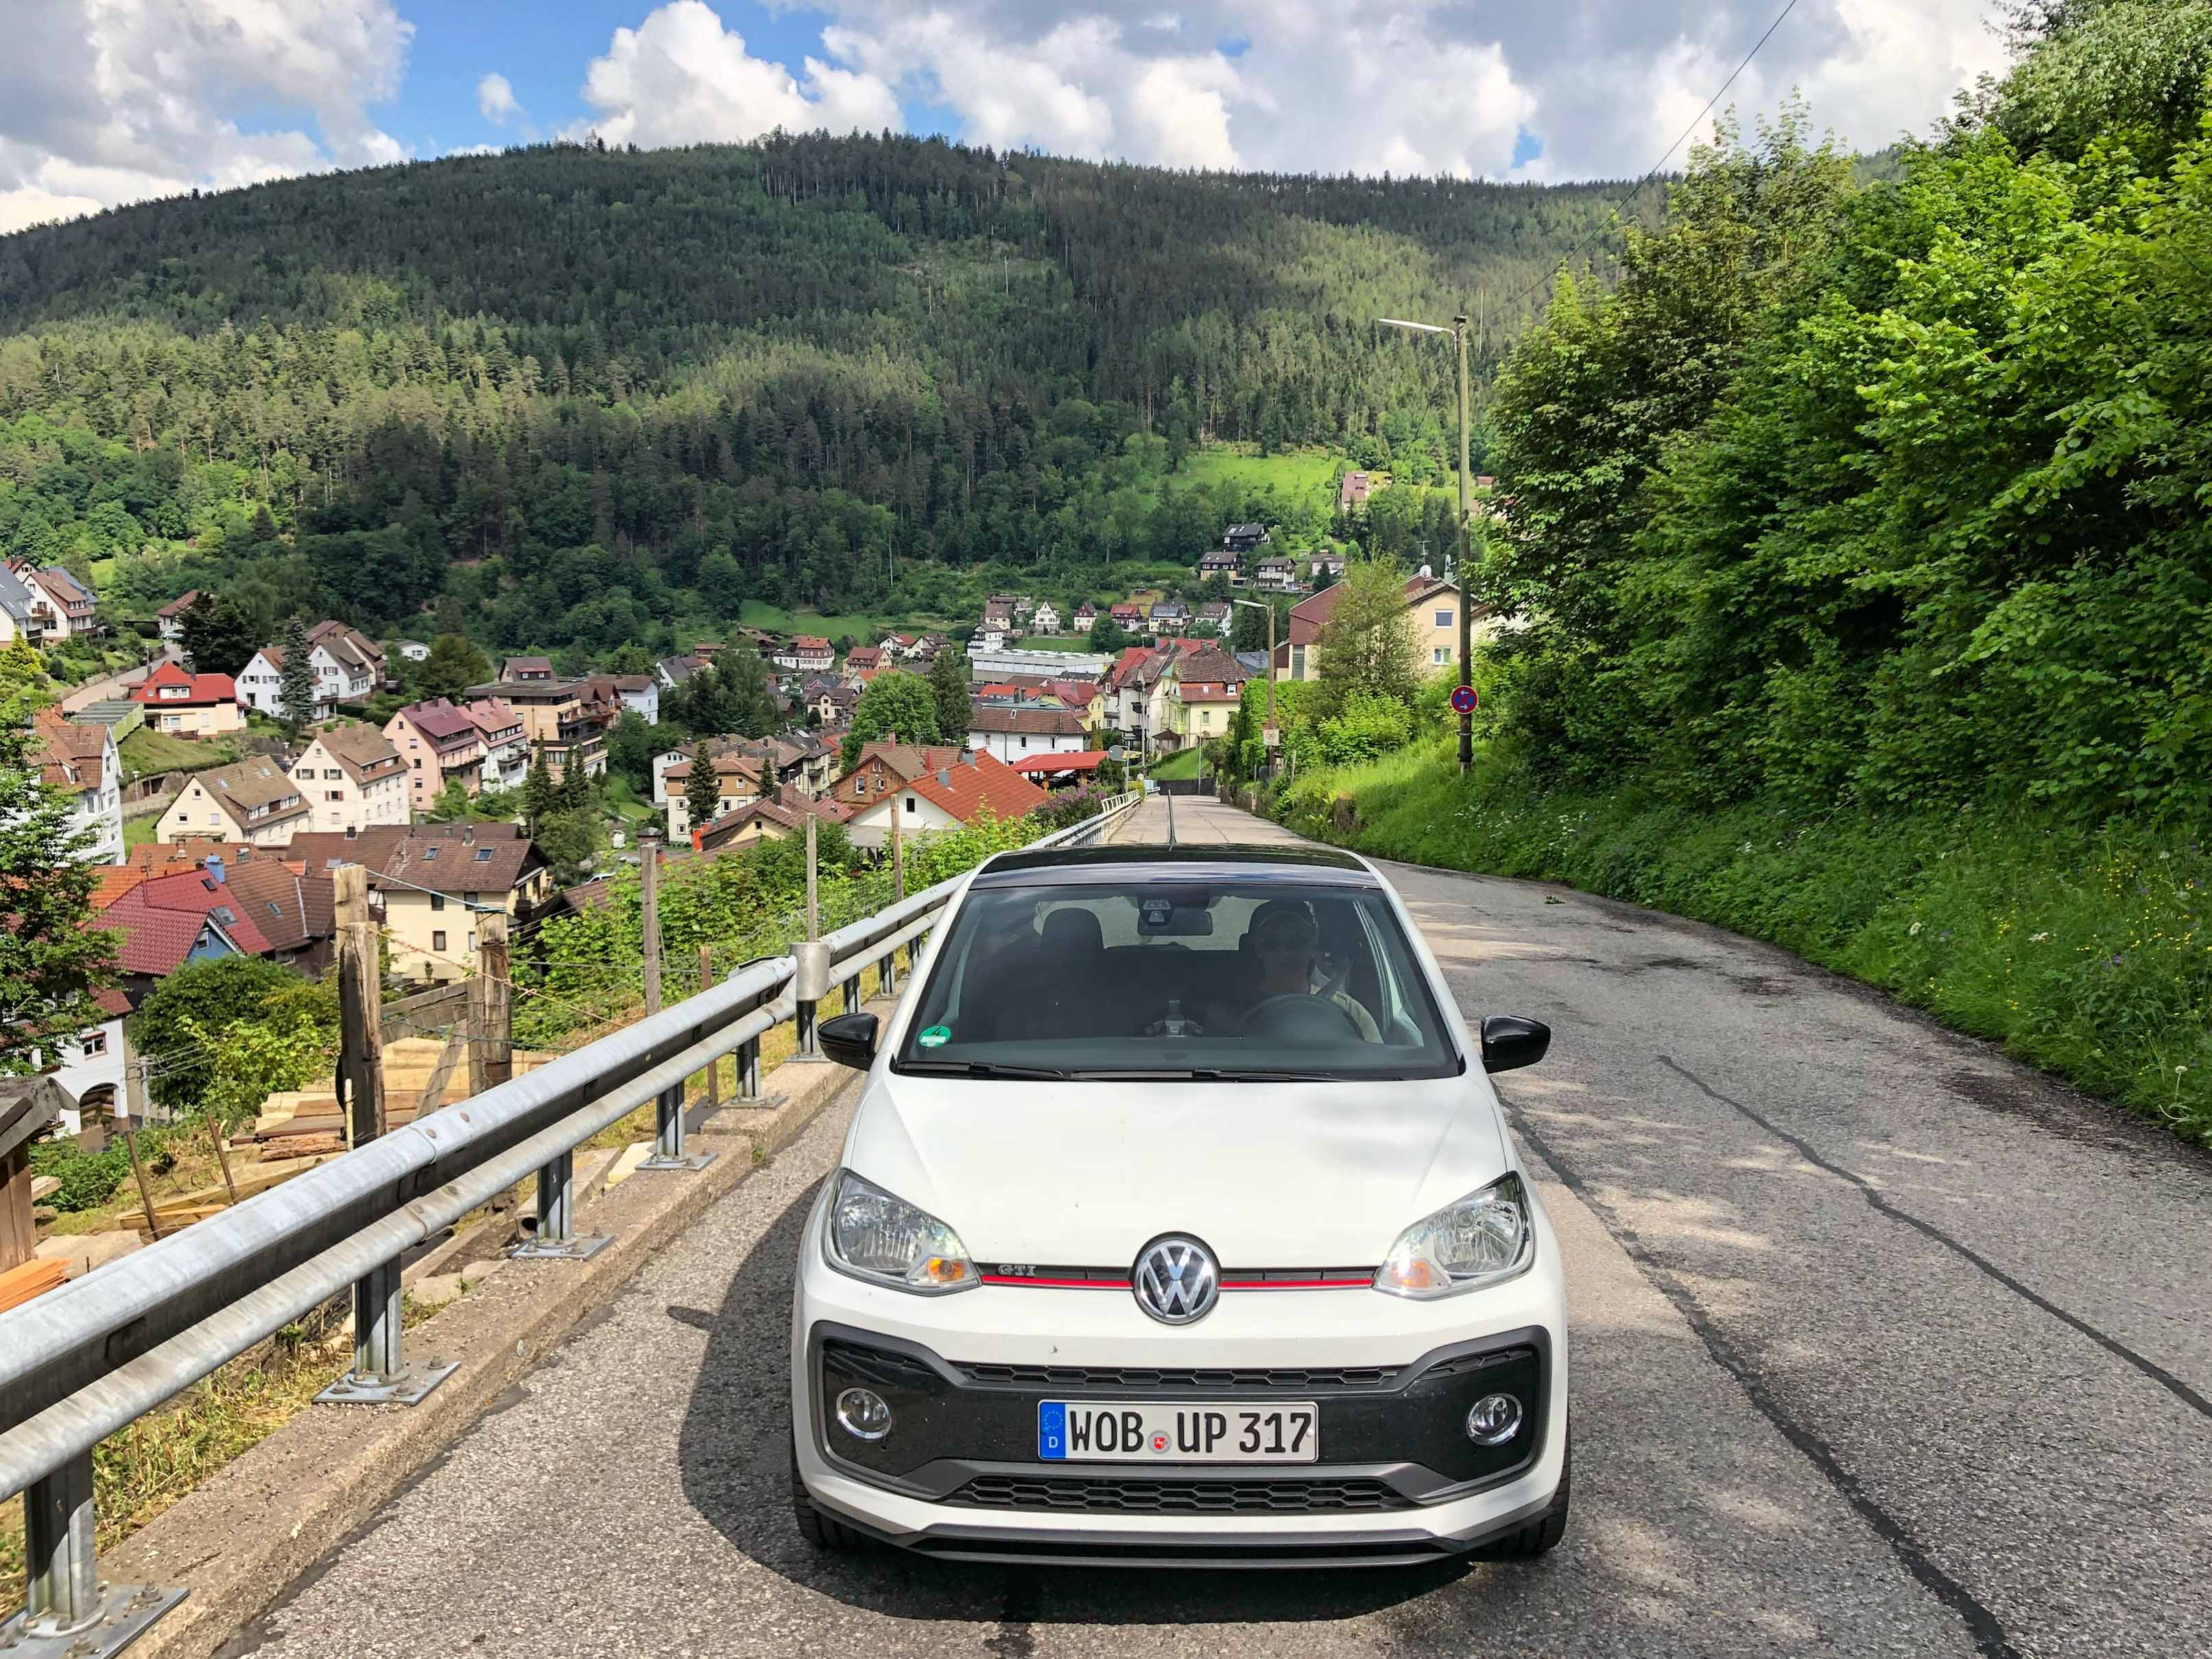 2018 Volkswagen Up! GTI Font shot with trees and town